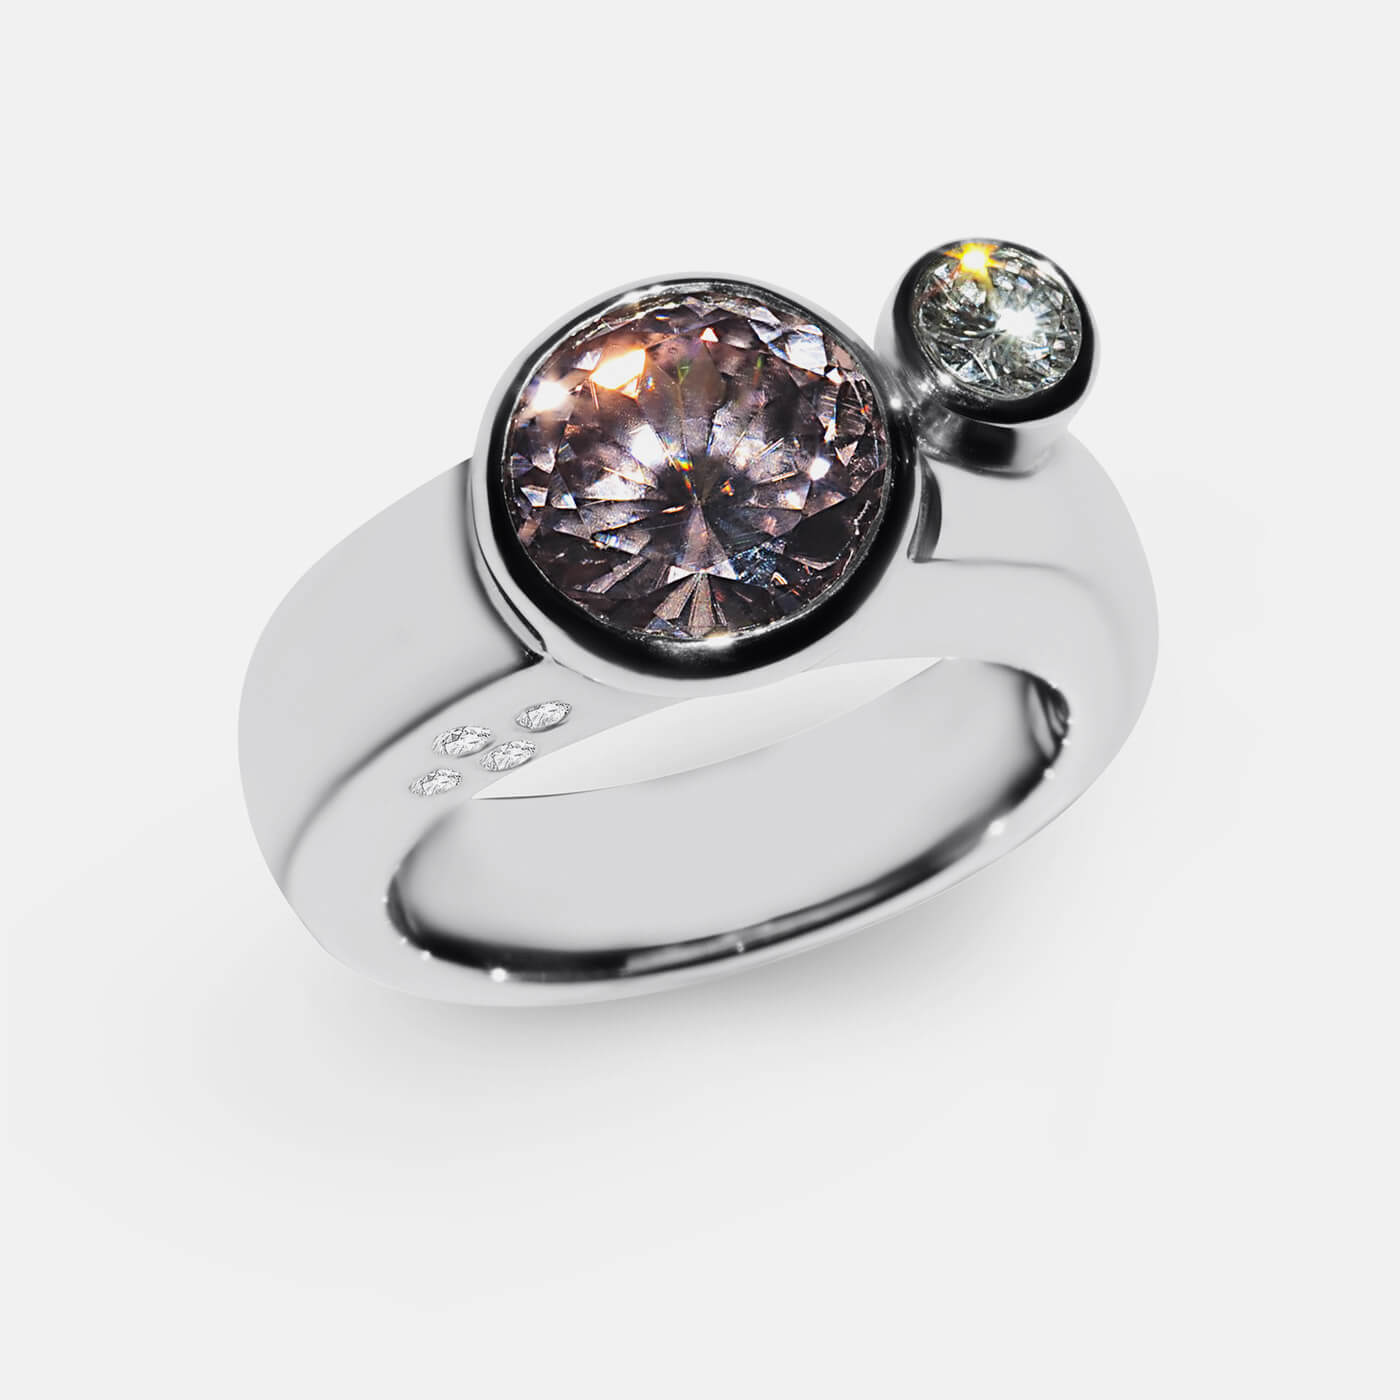 Mauve Zircon Dress Ring